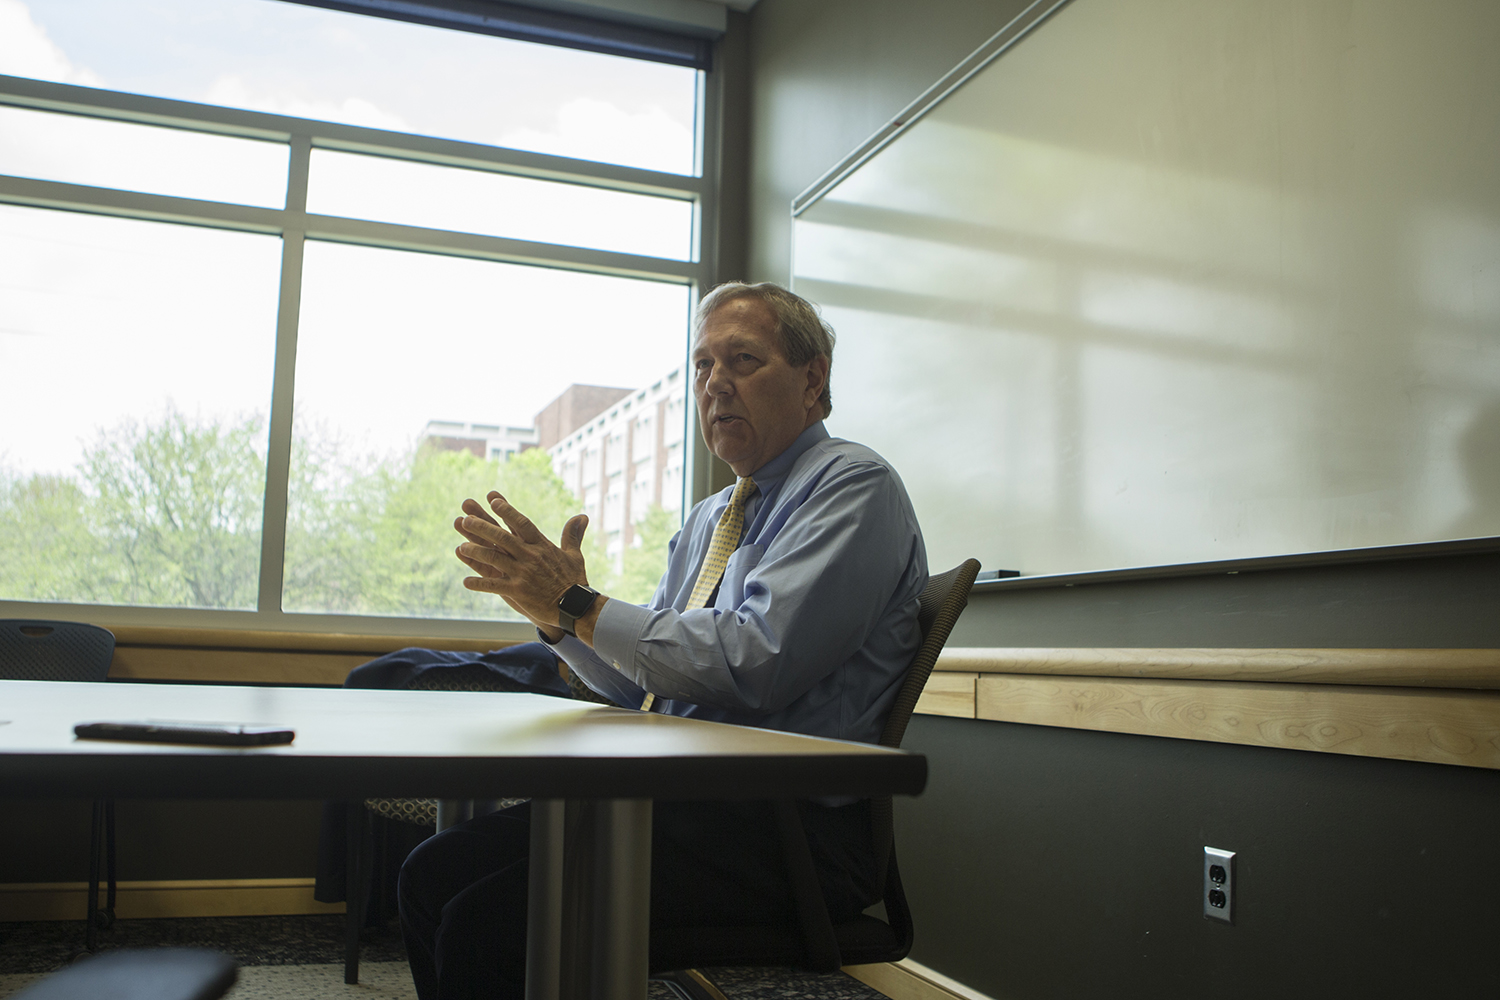 University of Iowa President Bruce Harreld sits down for an interview with the Daily Iowan in the Adler Journalism Building on May 2, 2019.